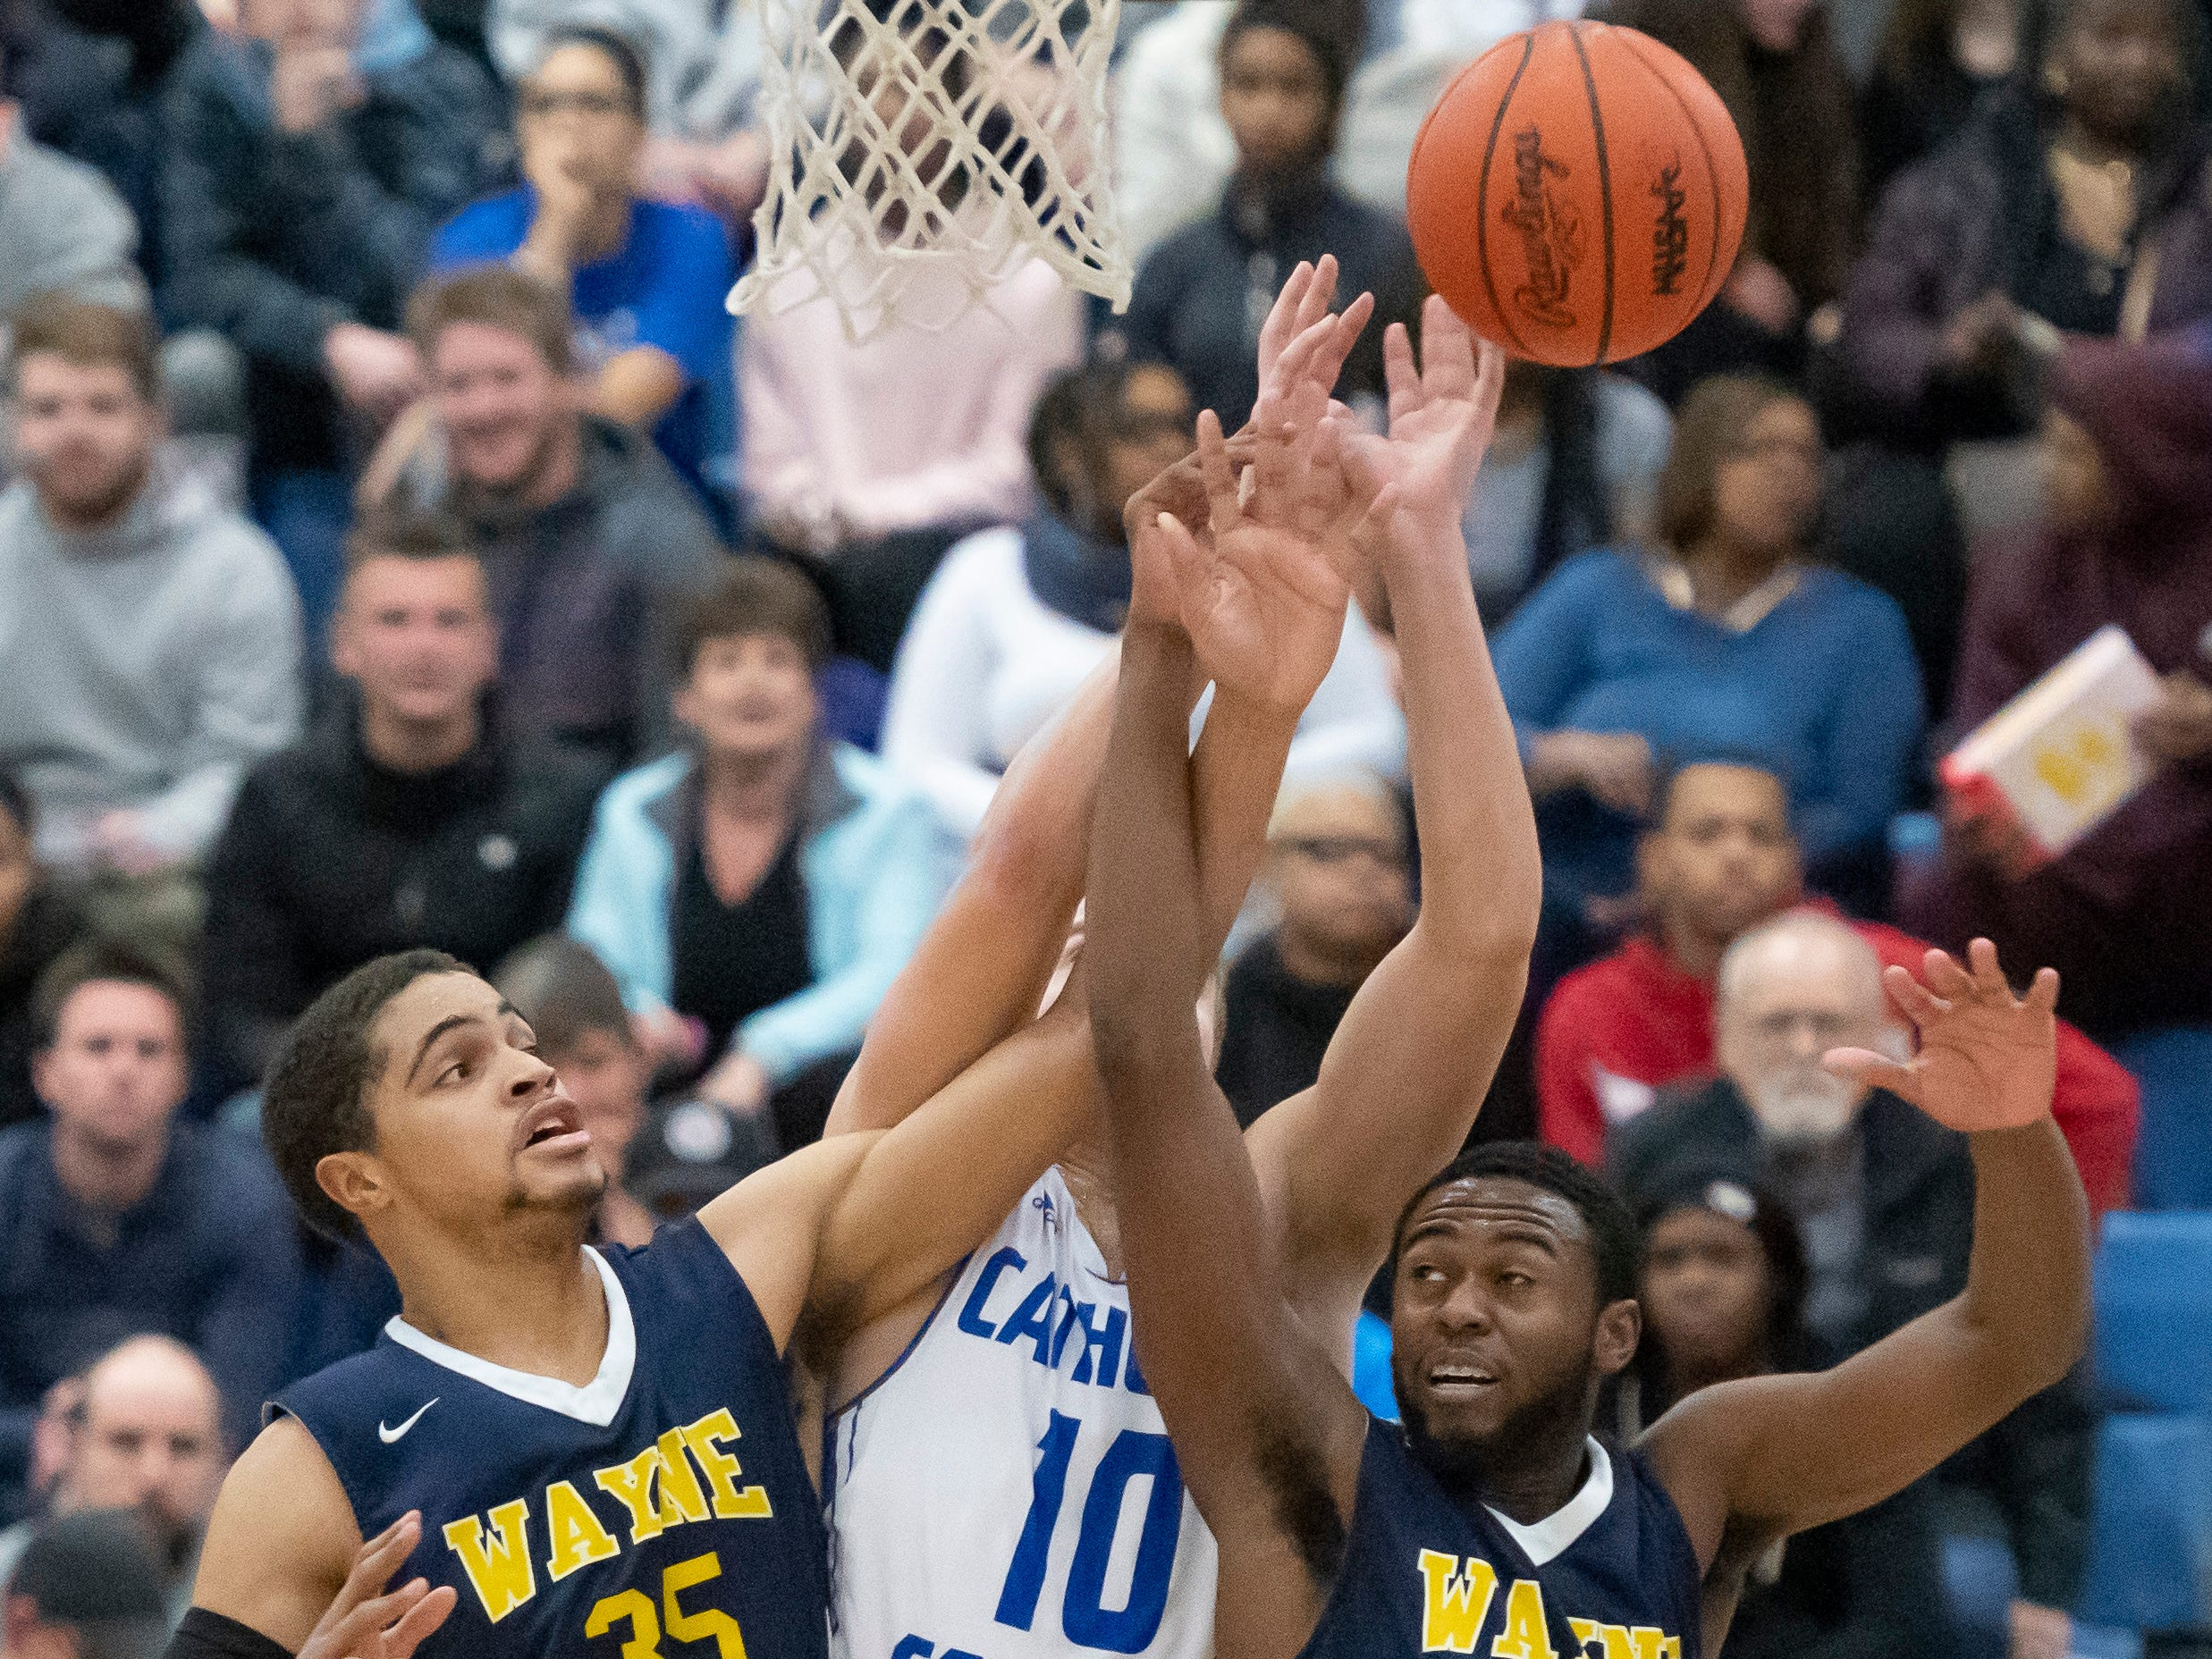 Wayne Memorial forward Dreyon O'Neal, left, and Chayce Leslie try to grab a rebound away from Detroit Catholic Central's Mike Harding in the first half.